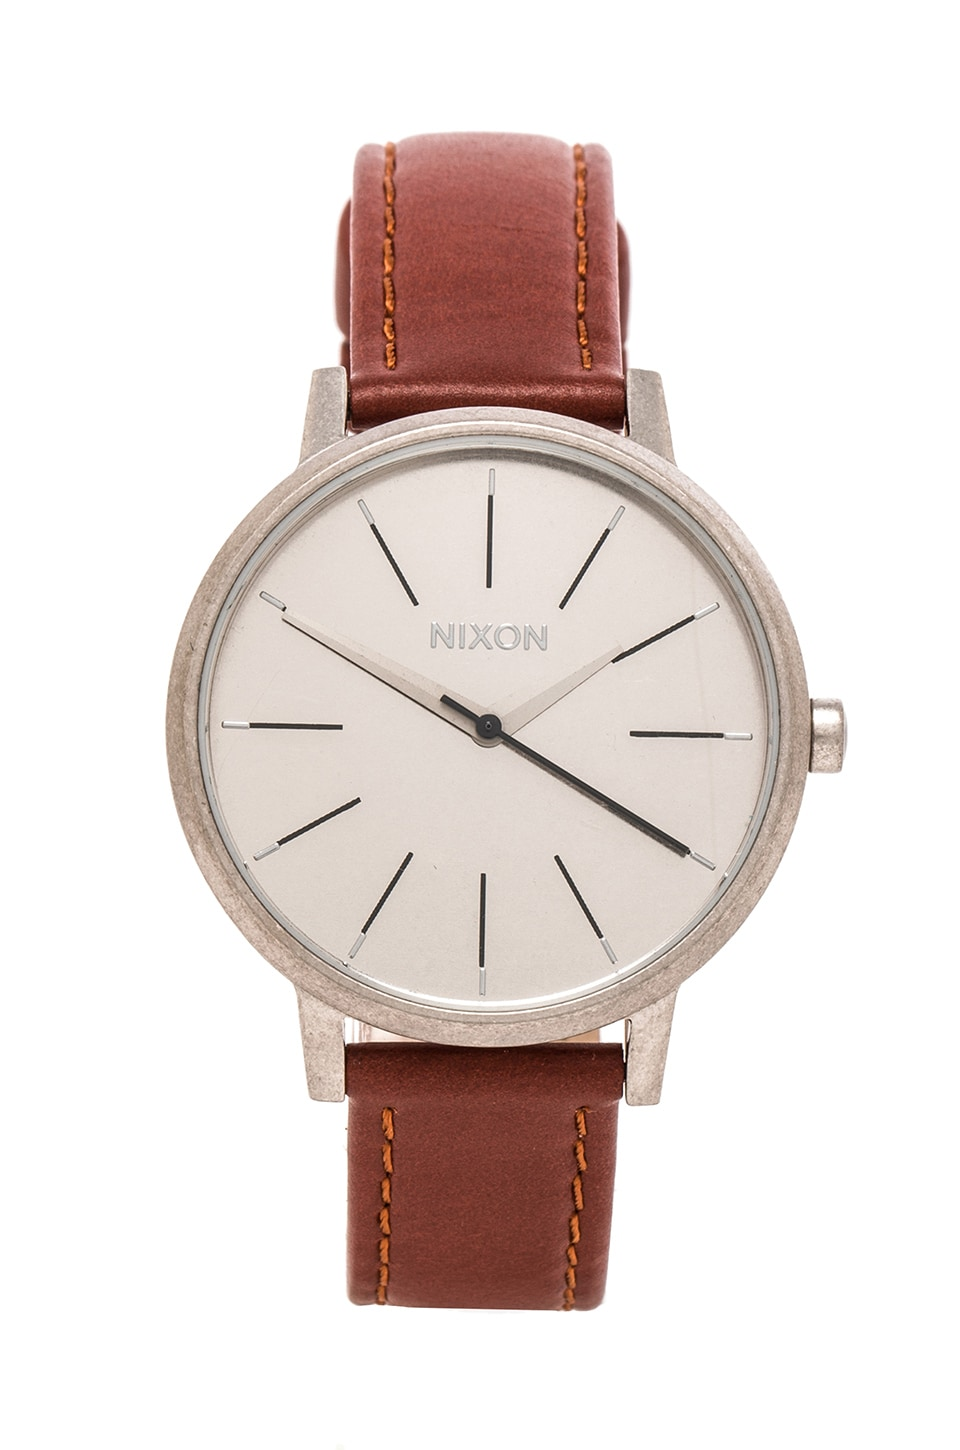 Nixon The Kensington Leather in Saddle